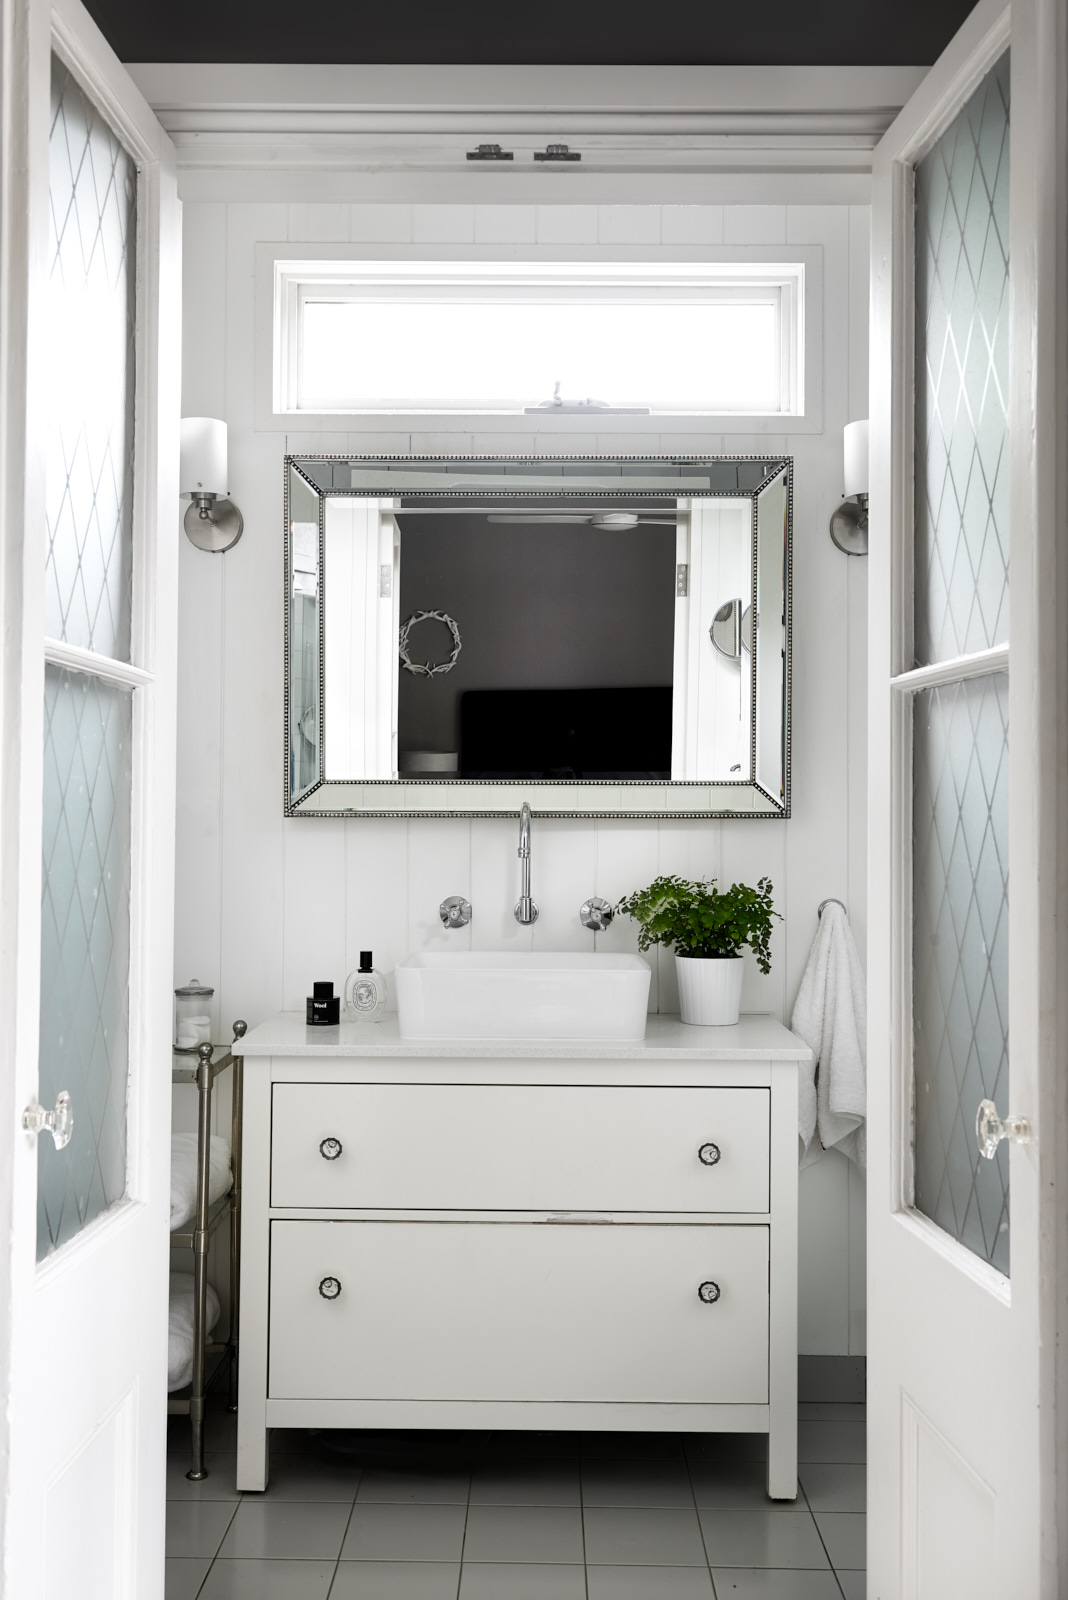 interior-decorating-bathroom-vanity-Liz-Hayward